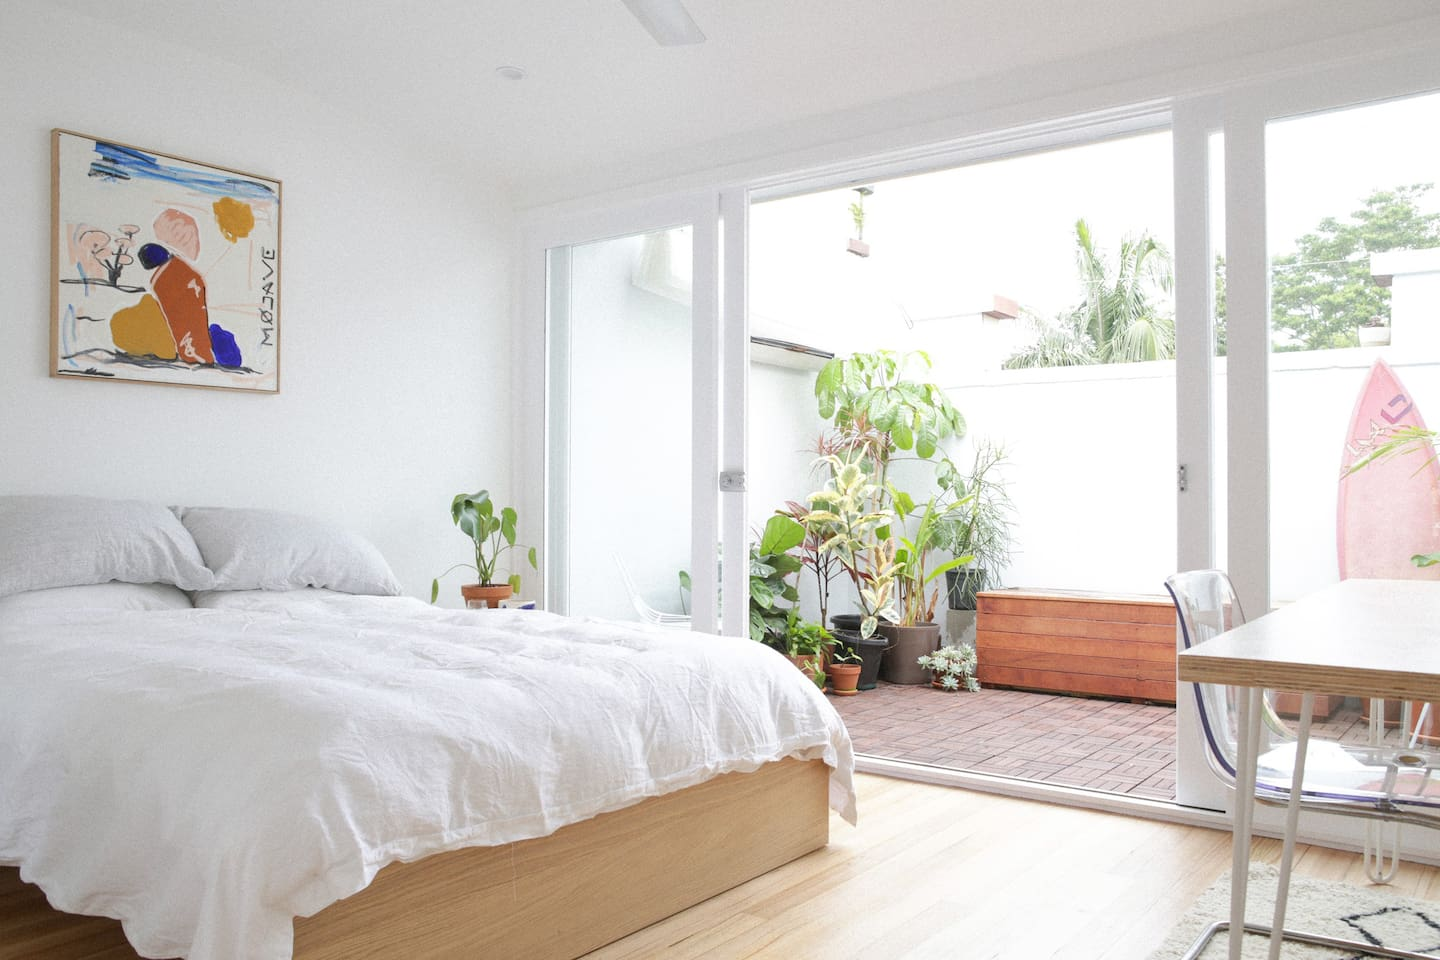 Spacious and light bedroom opens up to a plan filled private terrace overlooking the street below